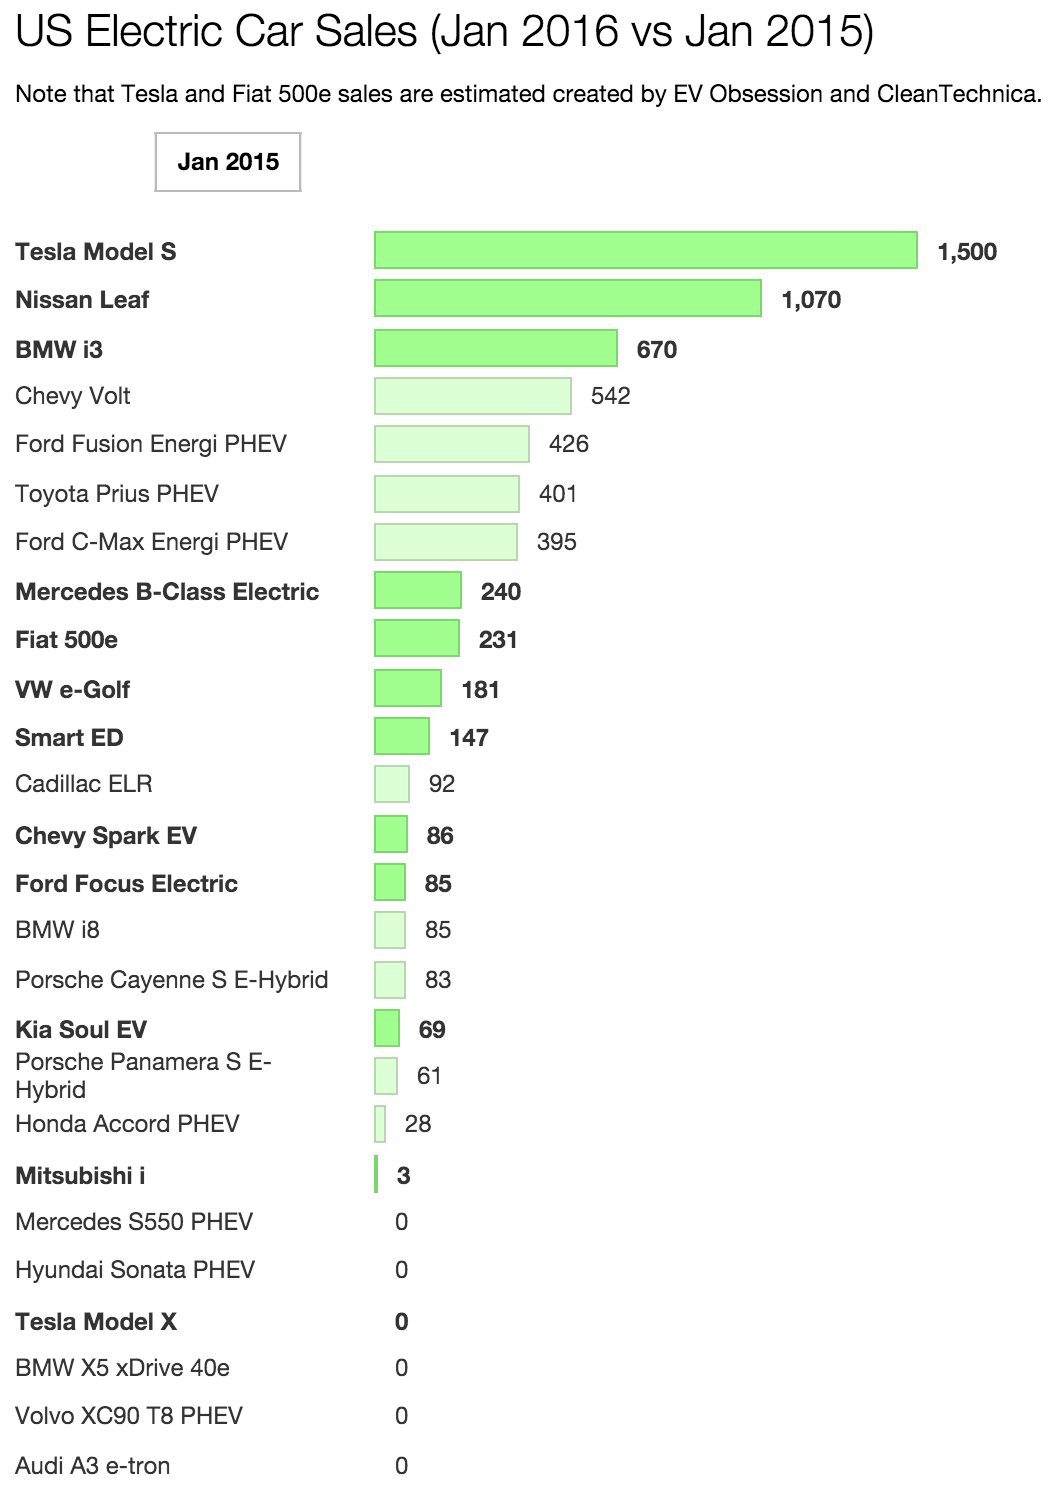 US electric car sales Jan 15